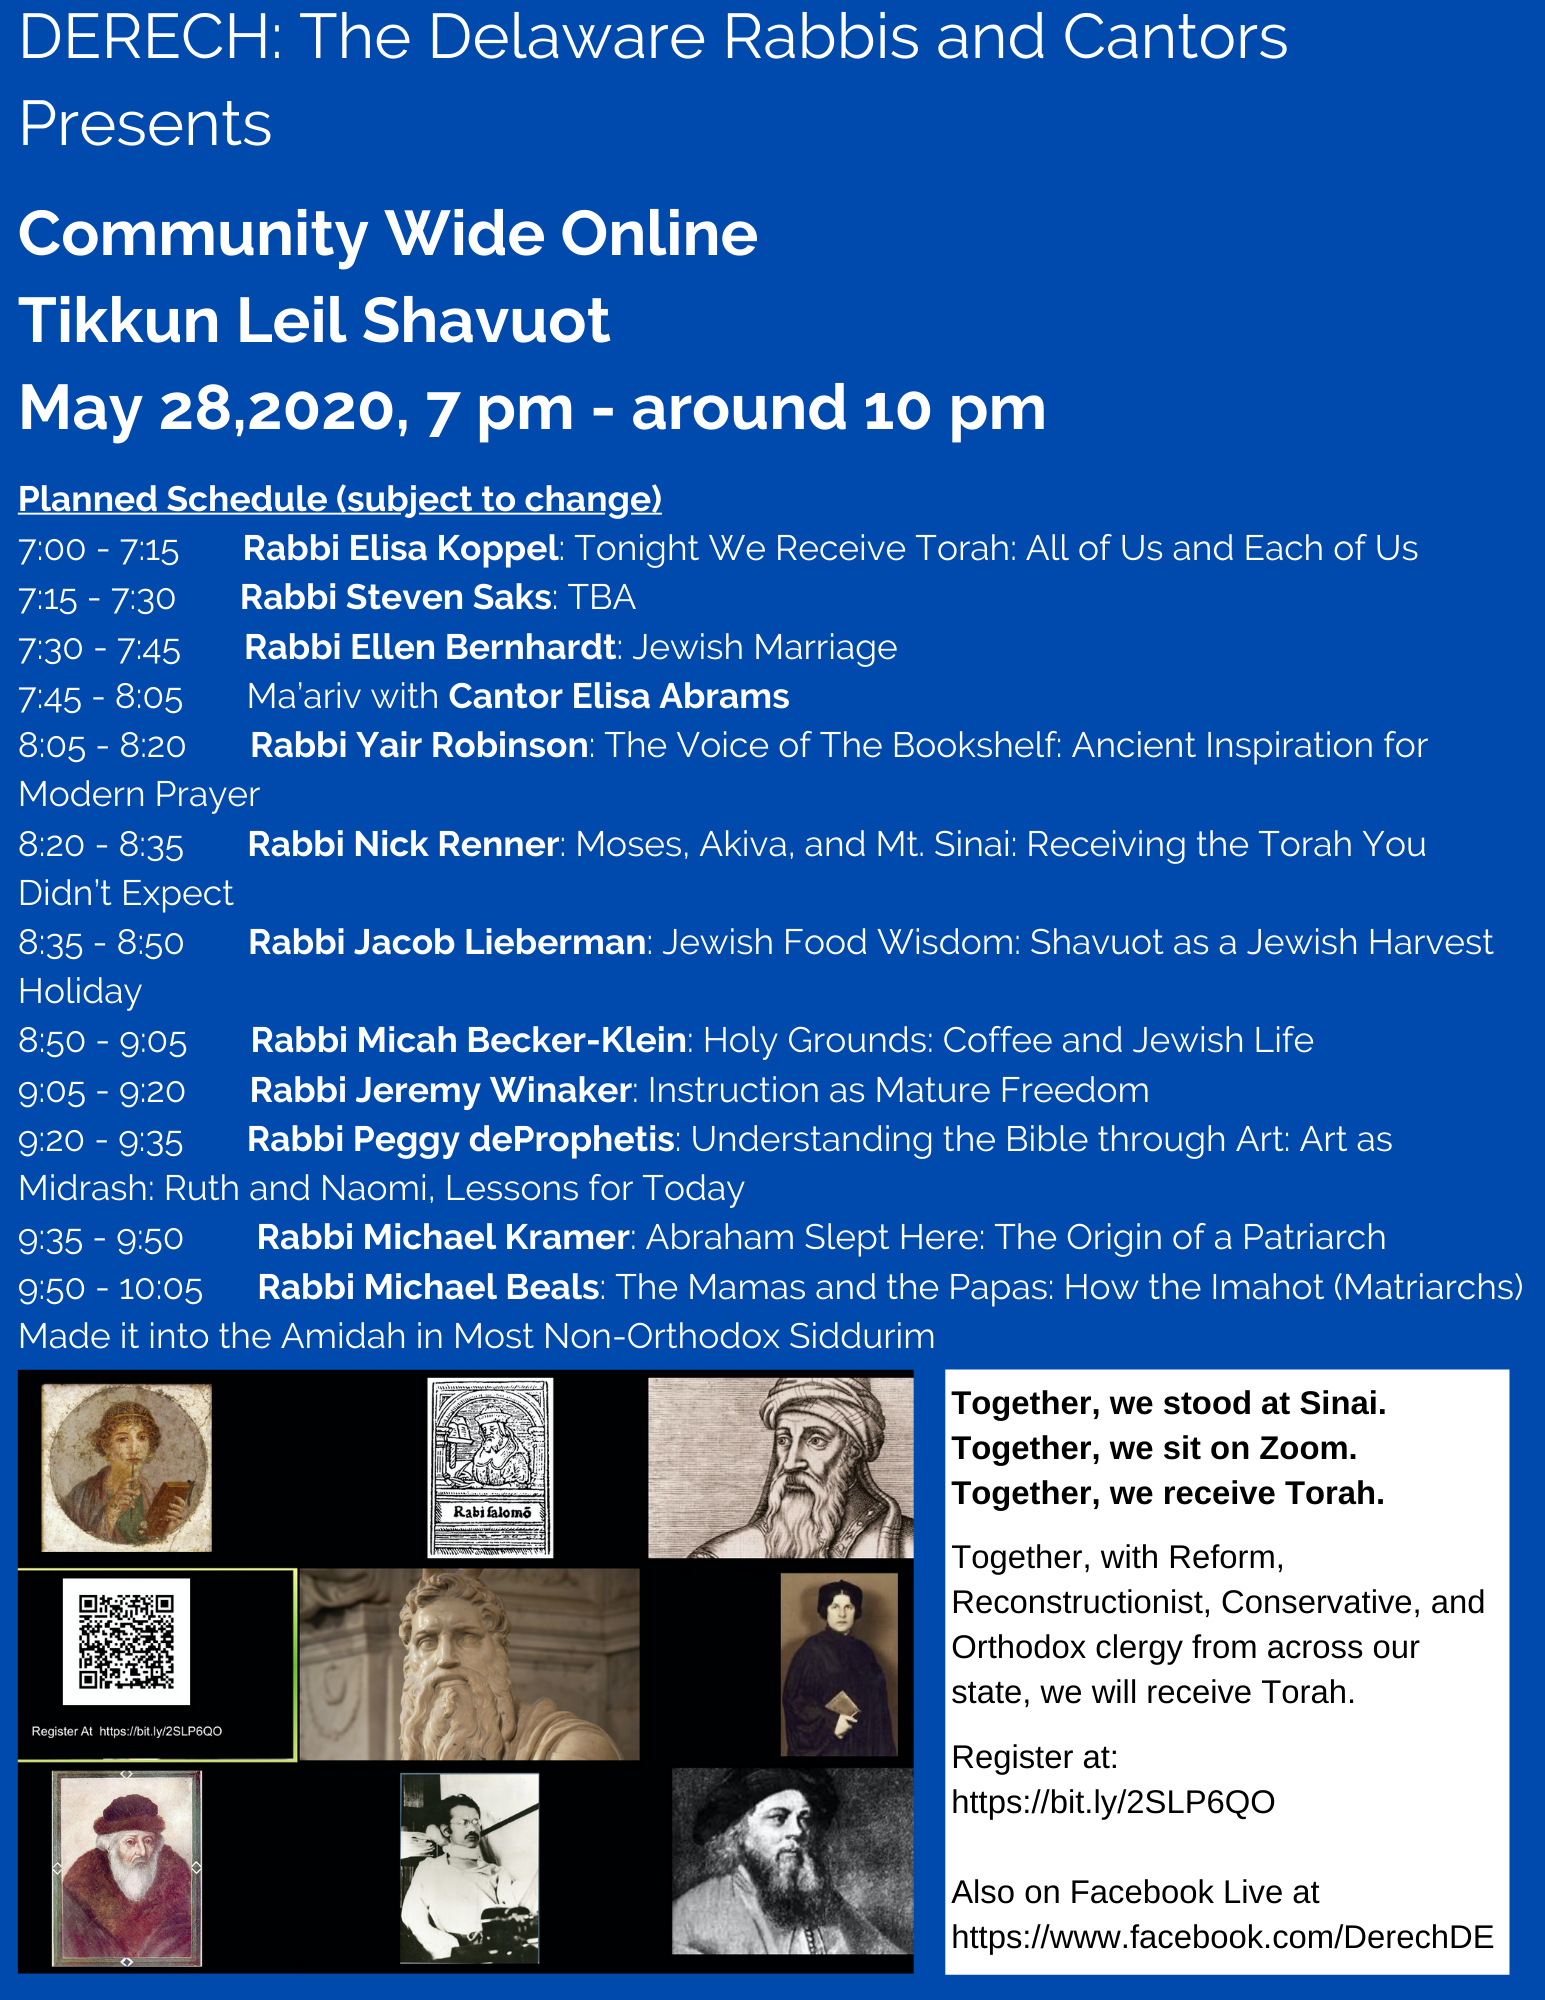 Learn with the Rabbis and Cantors of Delaware at our online Tikkun Leil Shavuot!